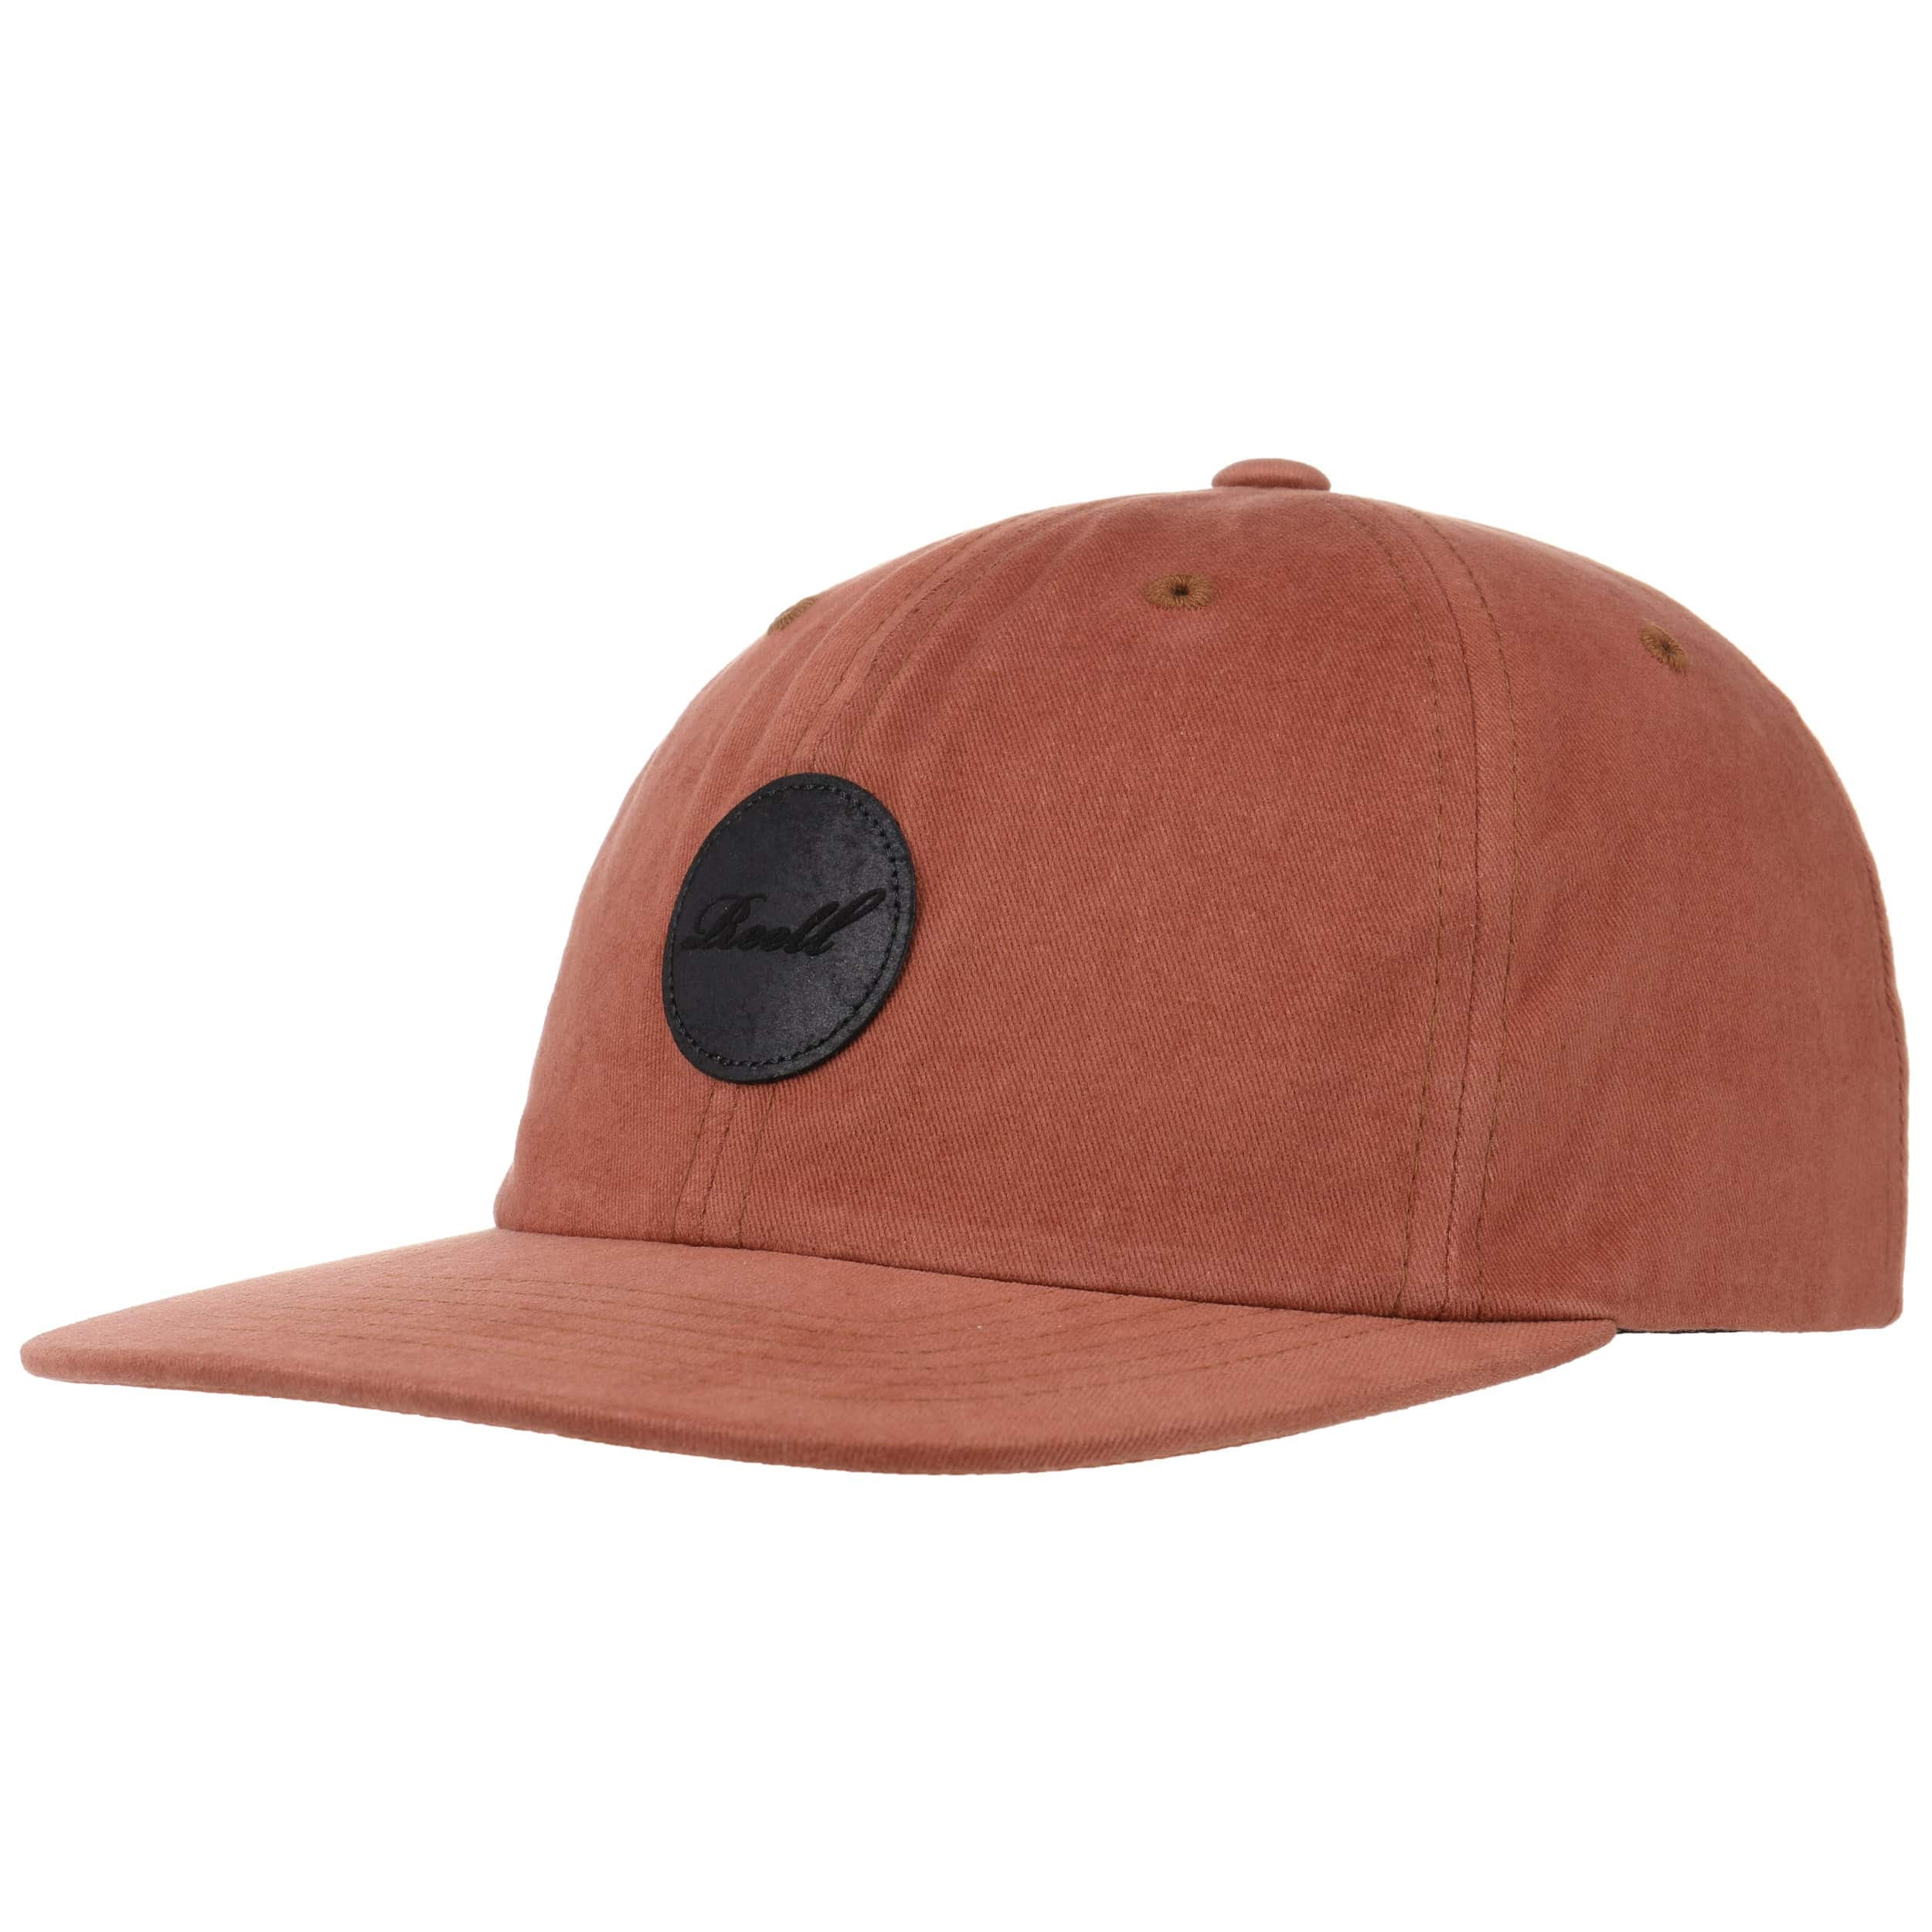 89a652661545c ... Flat 6 Panel Strapback Cap by Reell - oldrose 5 ...